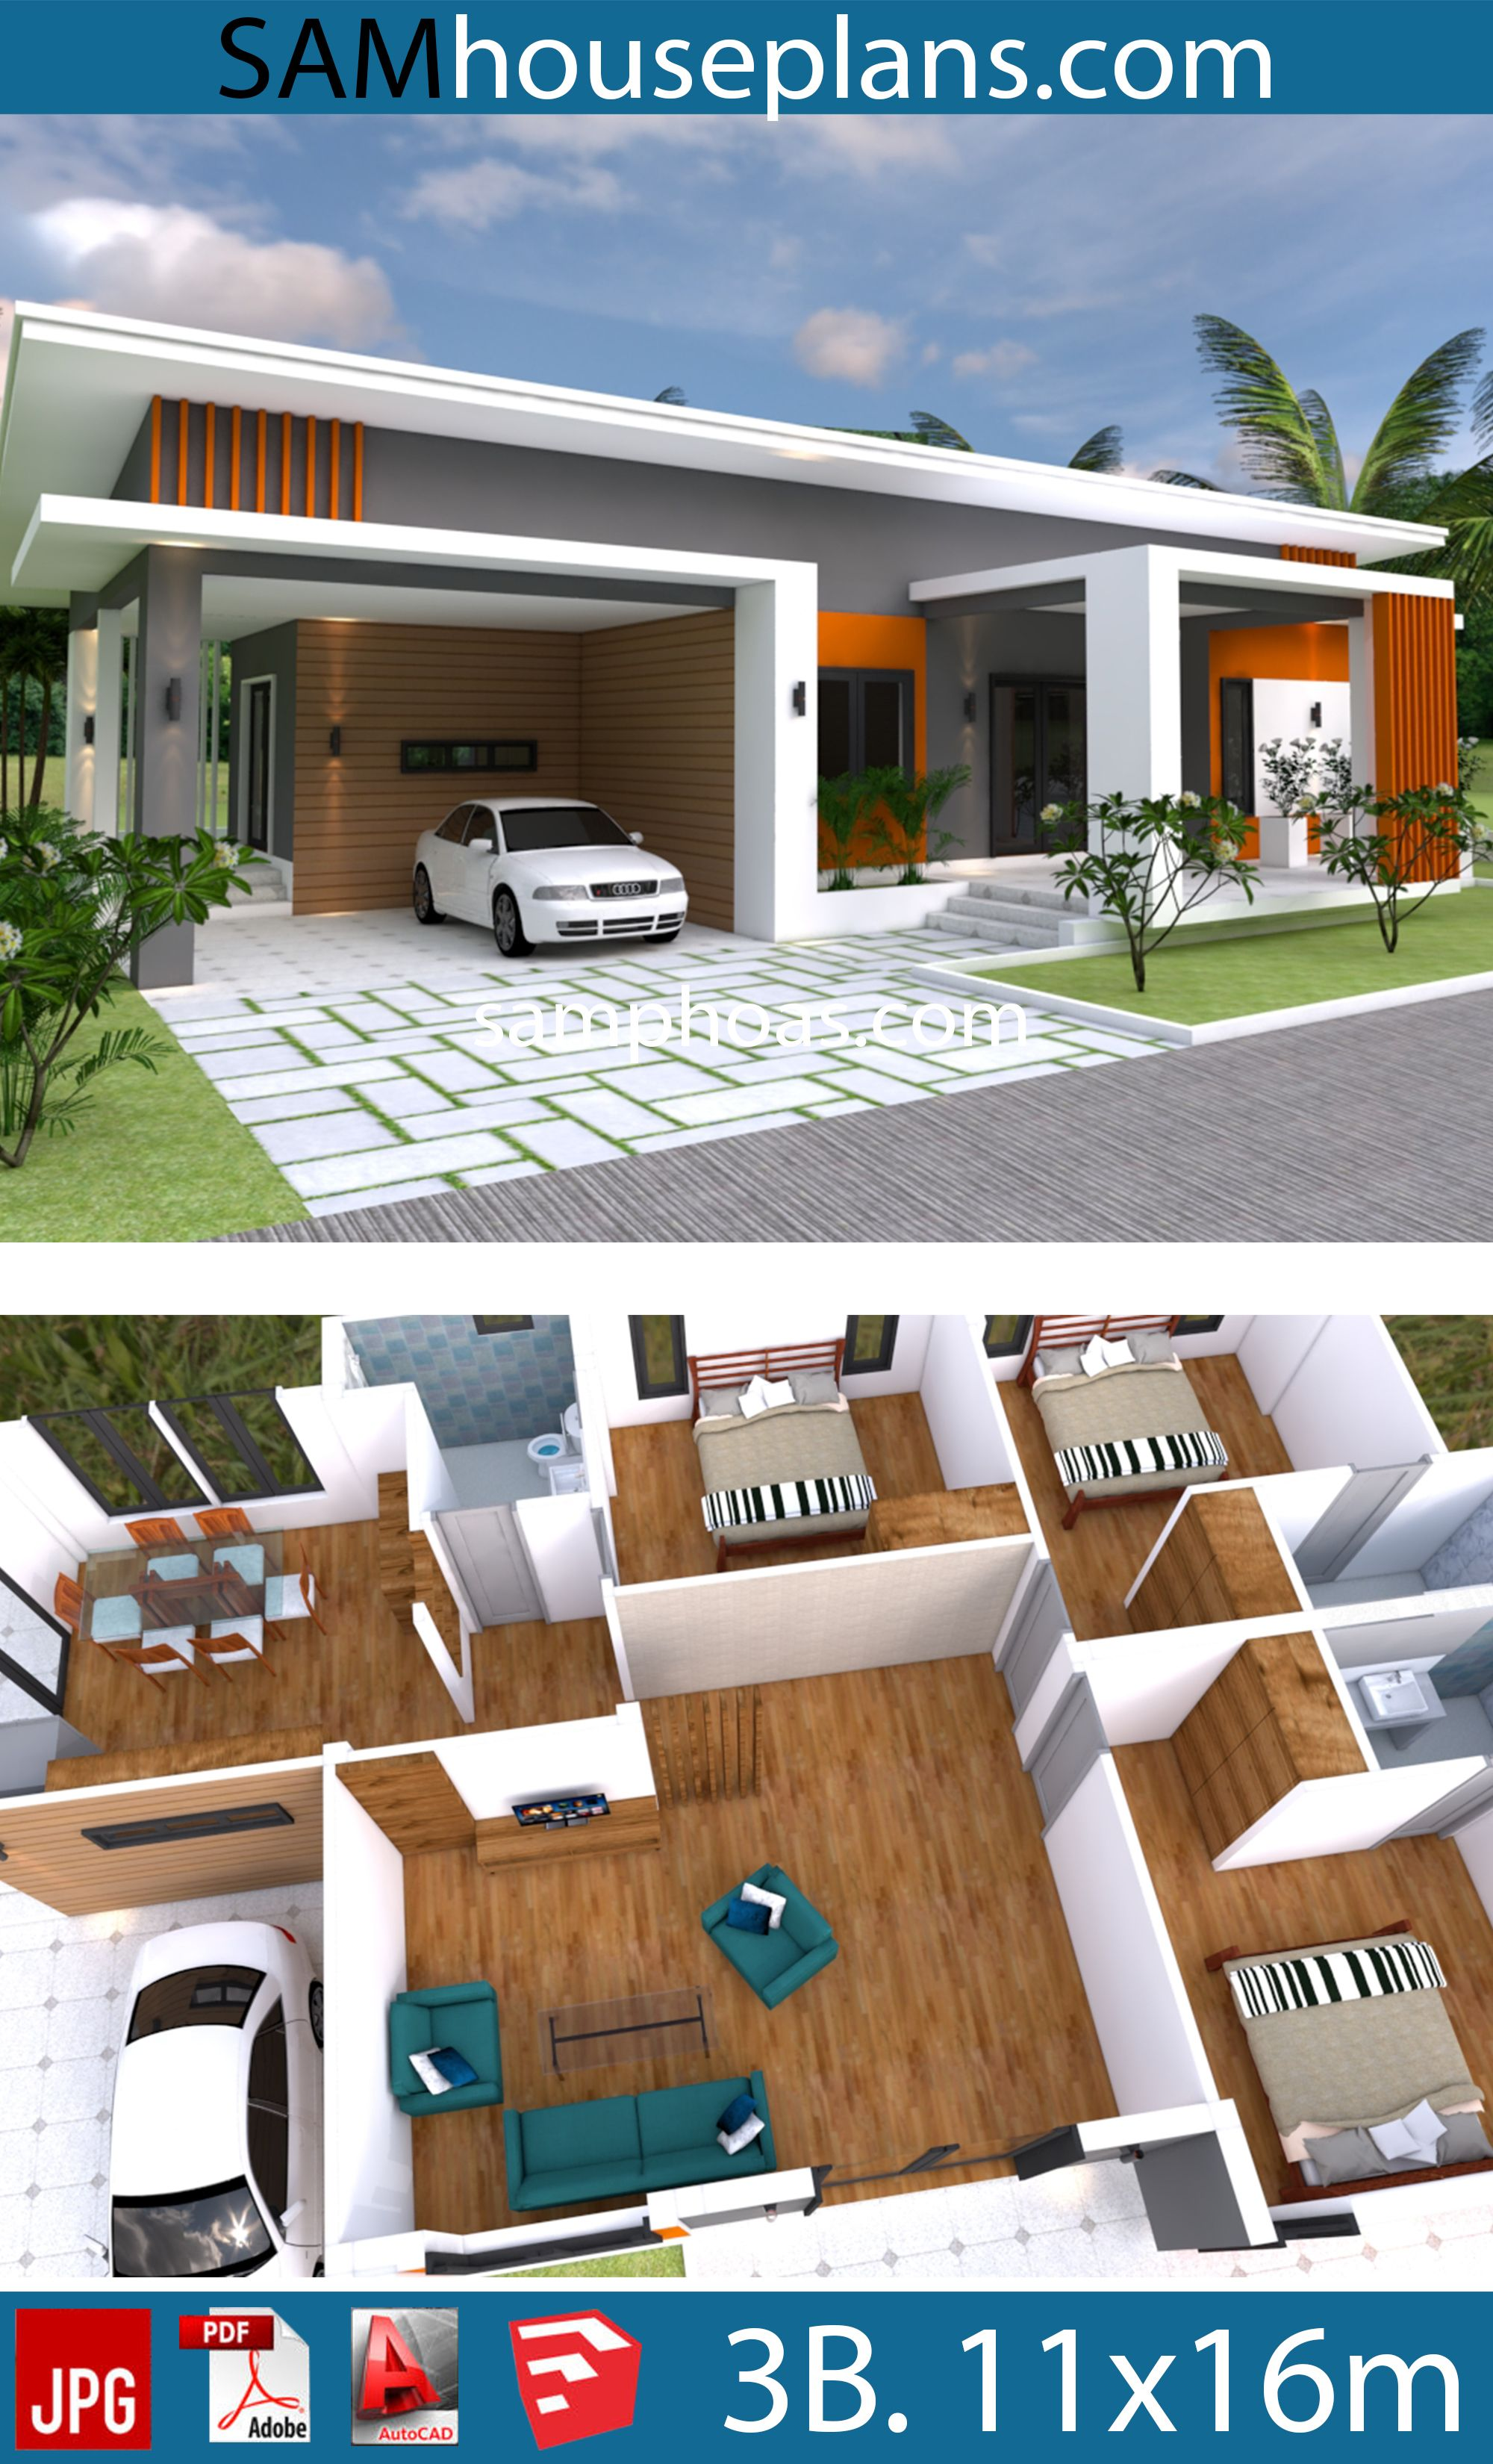 Home Plan 11x16m With 3 Bedrooms Sam House Plans Small House Design Plans House Plans Beautiful House Plans